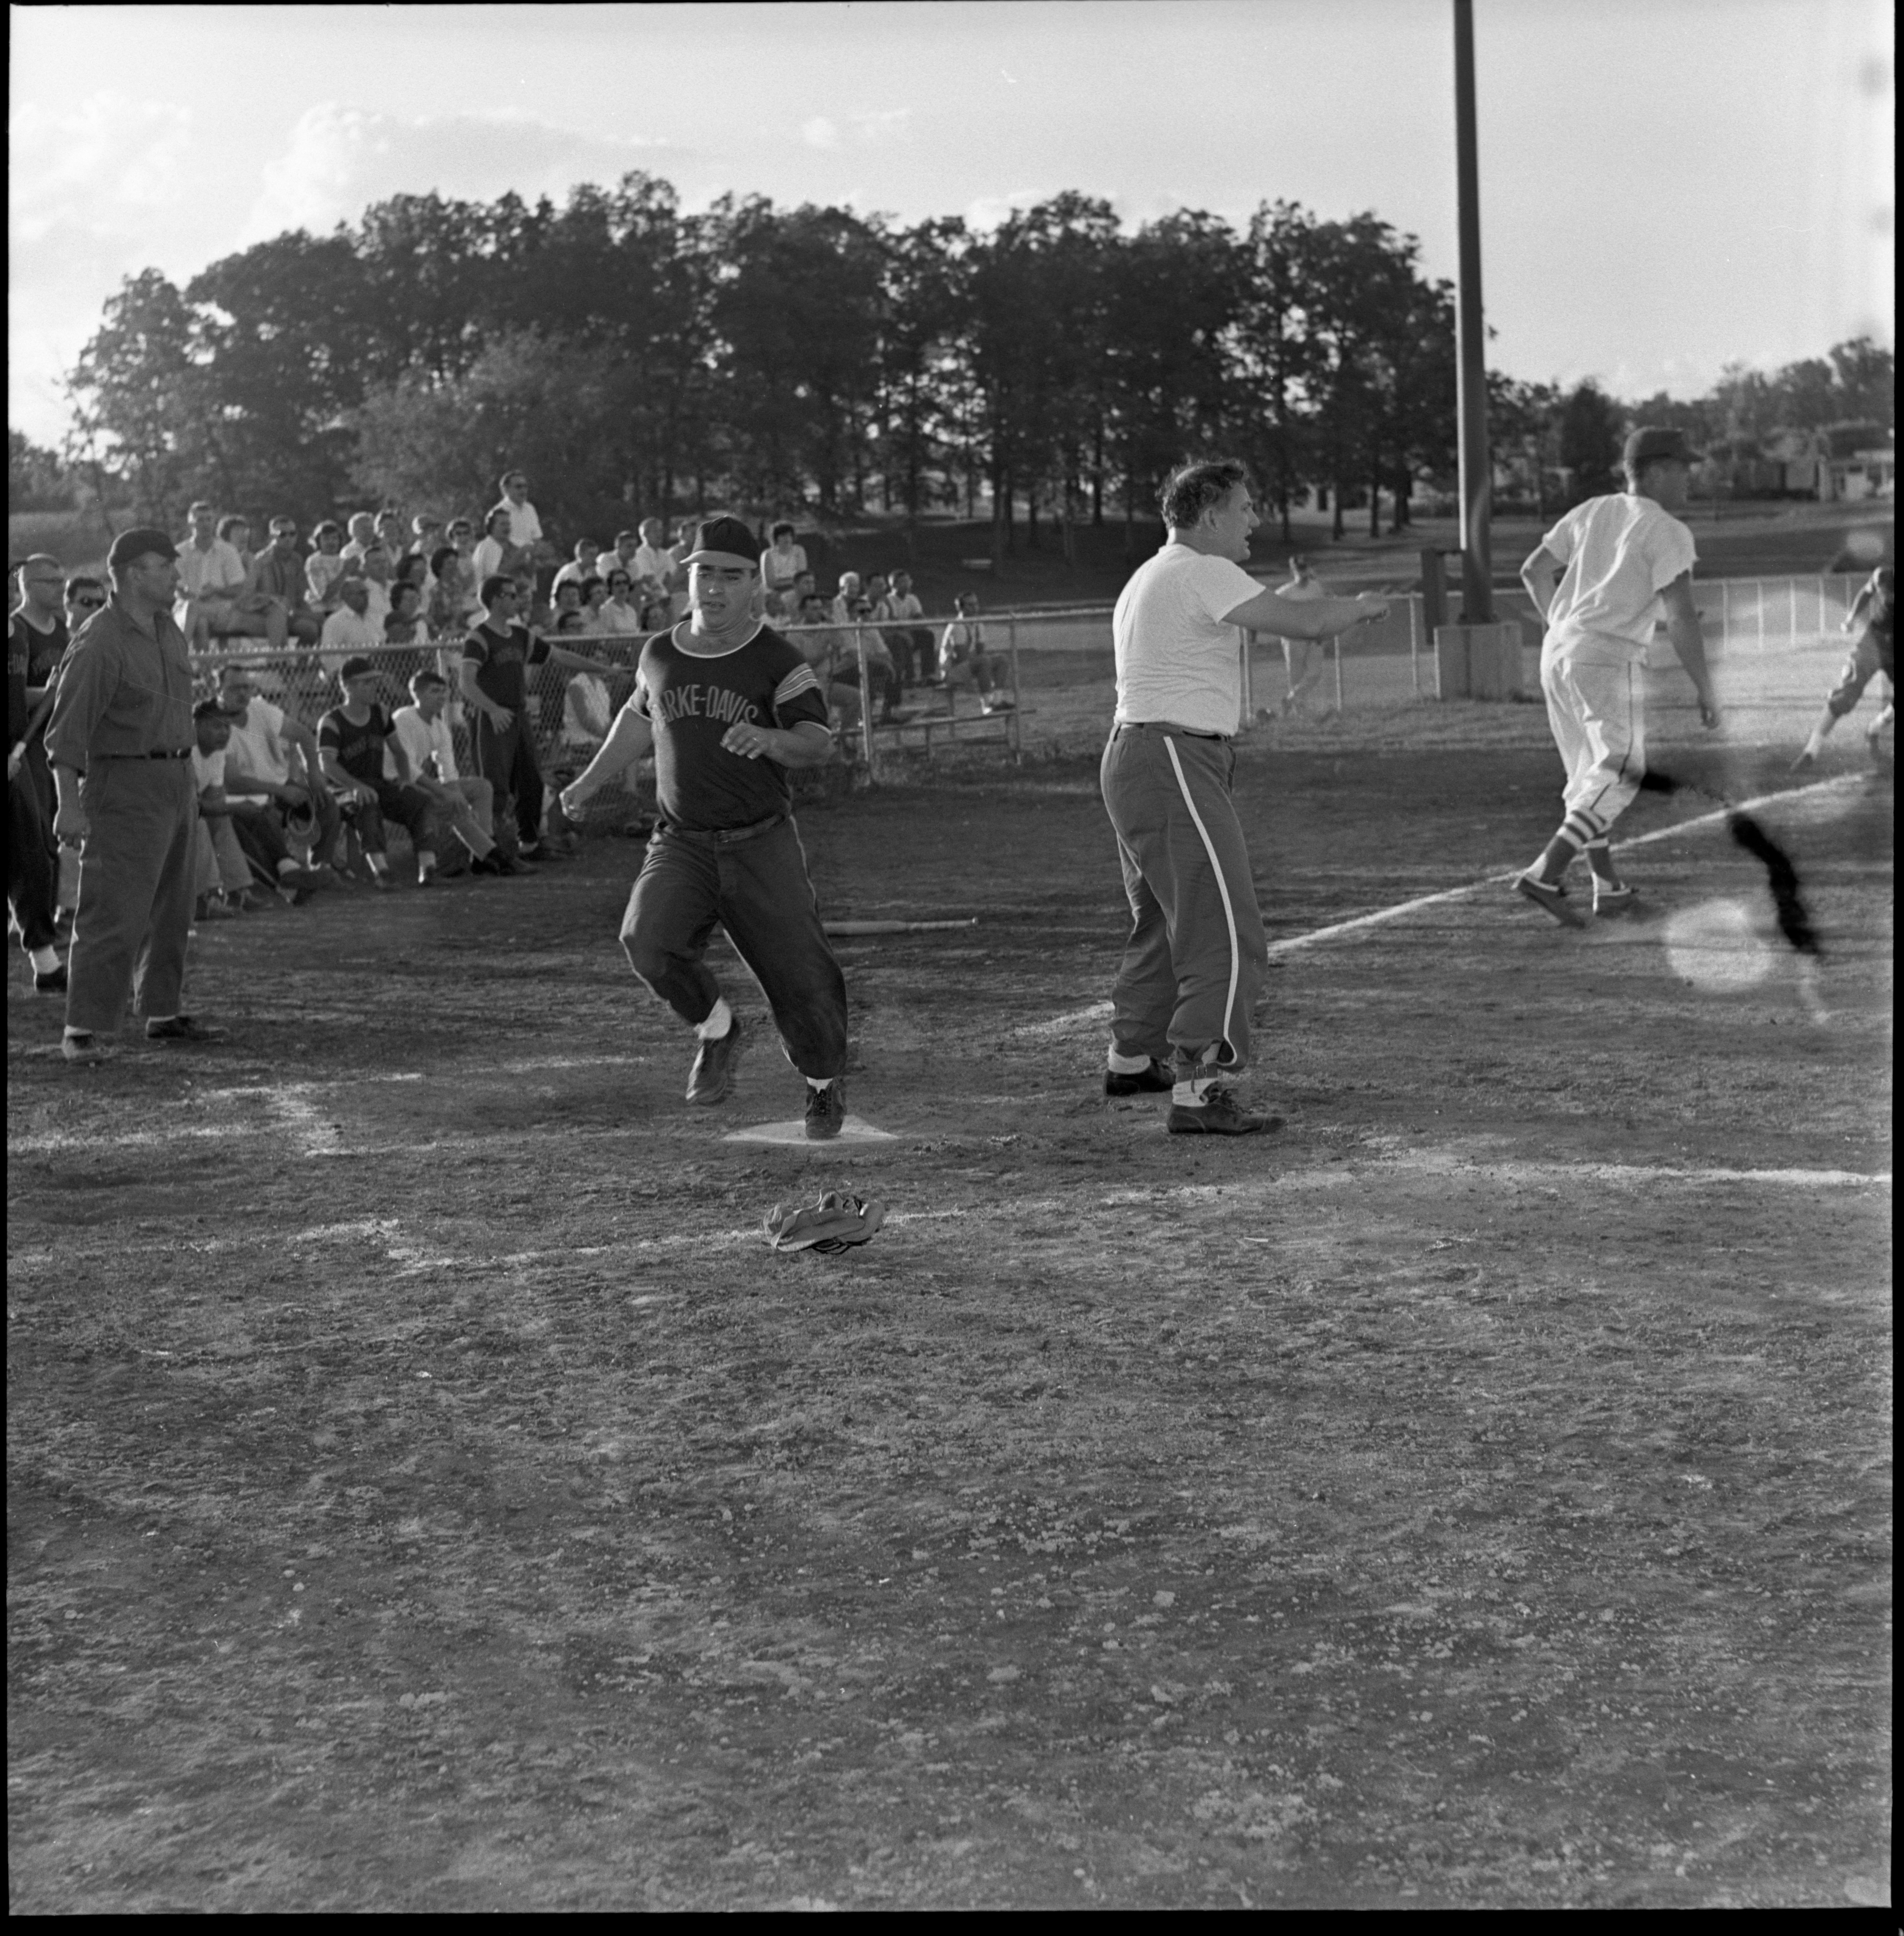 Recreation League Class D Softball Tournament Title Game - Parke Davis vs Moore's Shell, July 1963 image